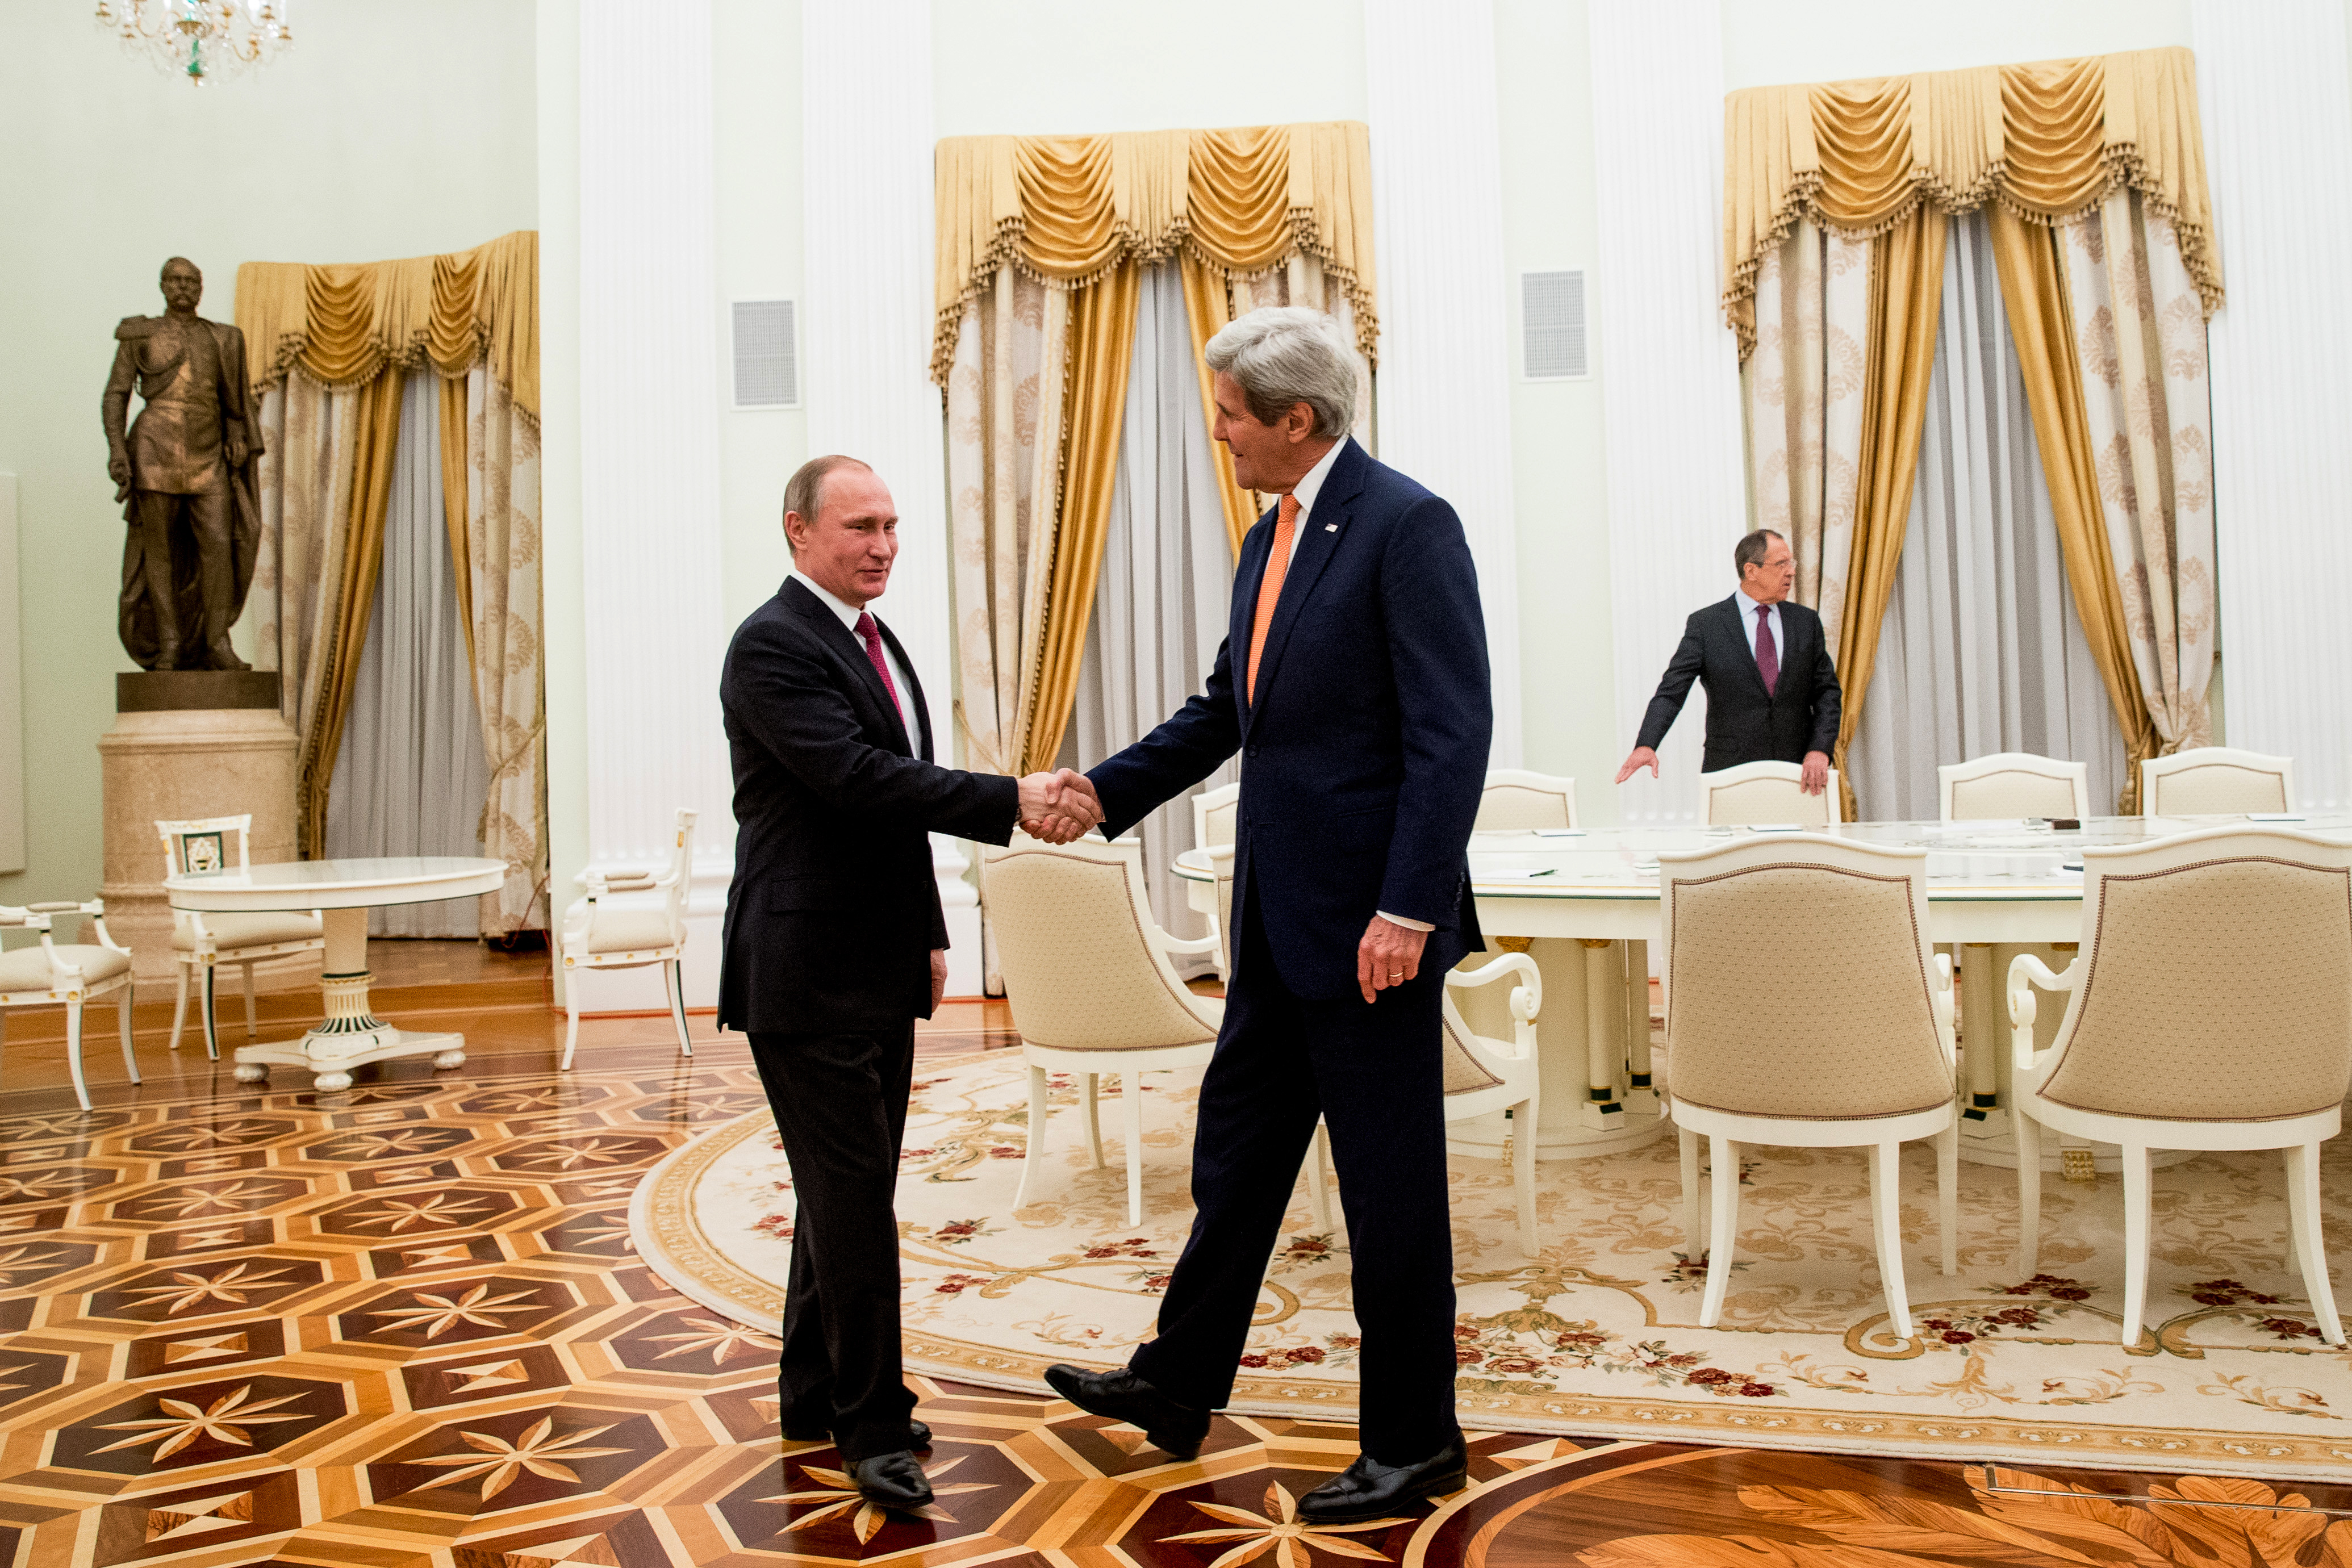 U.S. Secretary of State John Kerry shakes hands with Russian President Vladimir Putin before their meeting at the Kremlin in Moscow on March 24, 2016